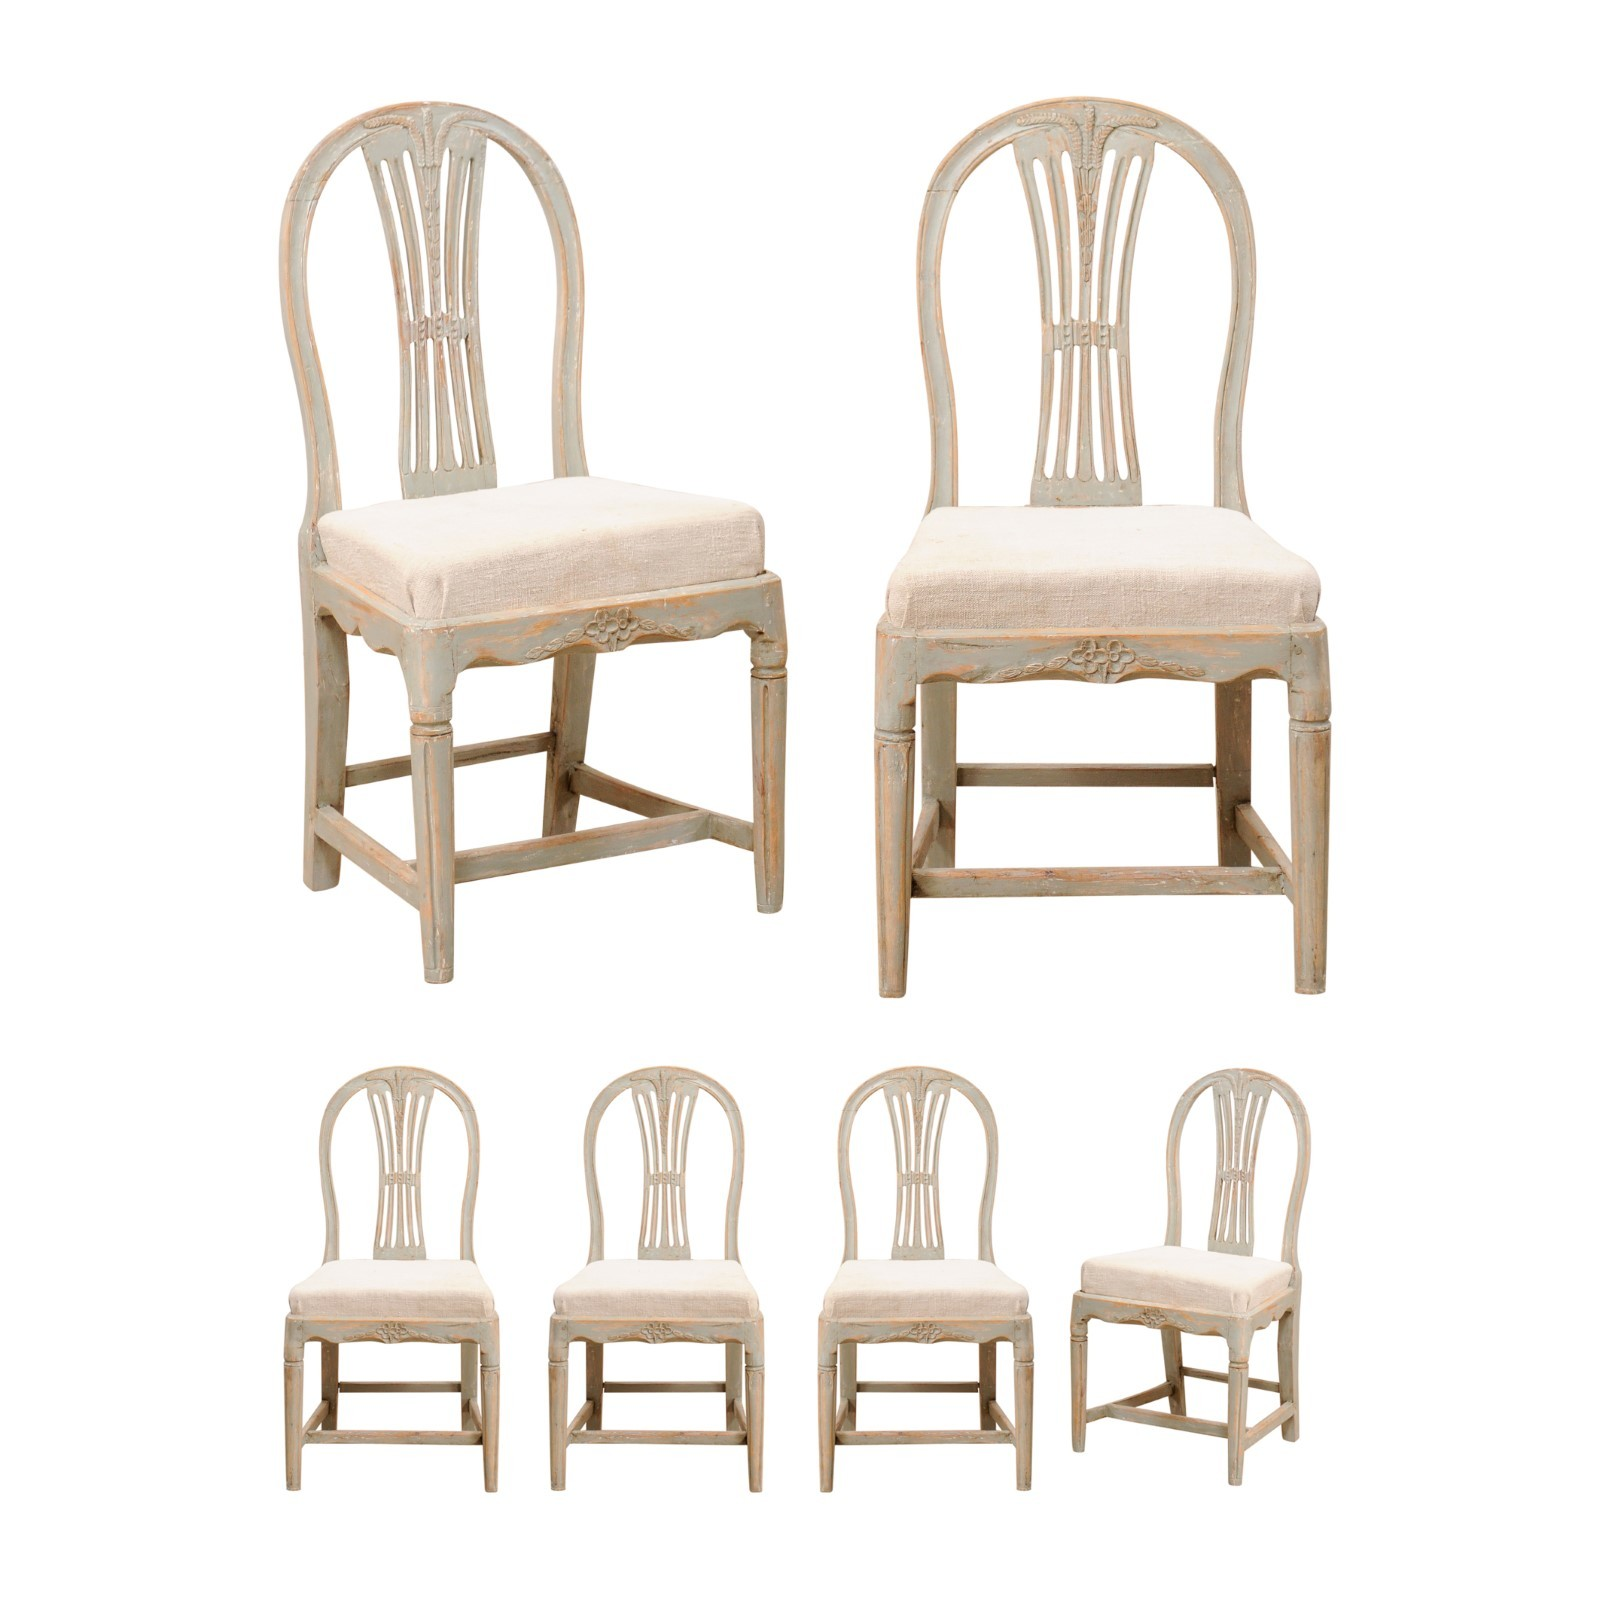 Set of 6 Period Gustavian Wheat Back Chairs